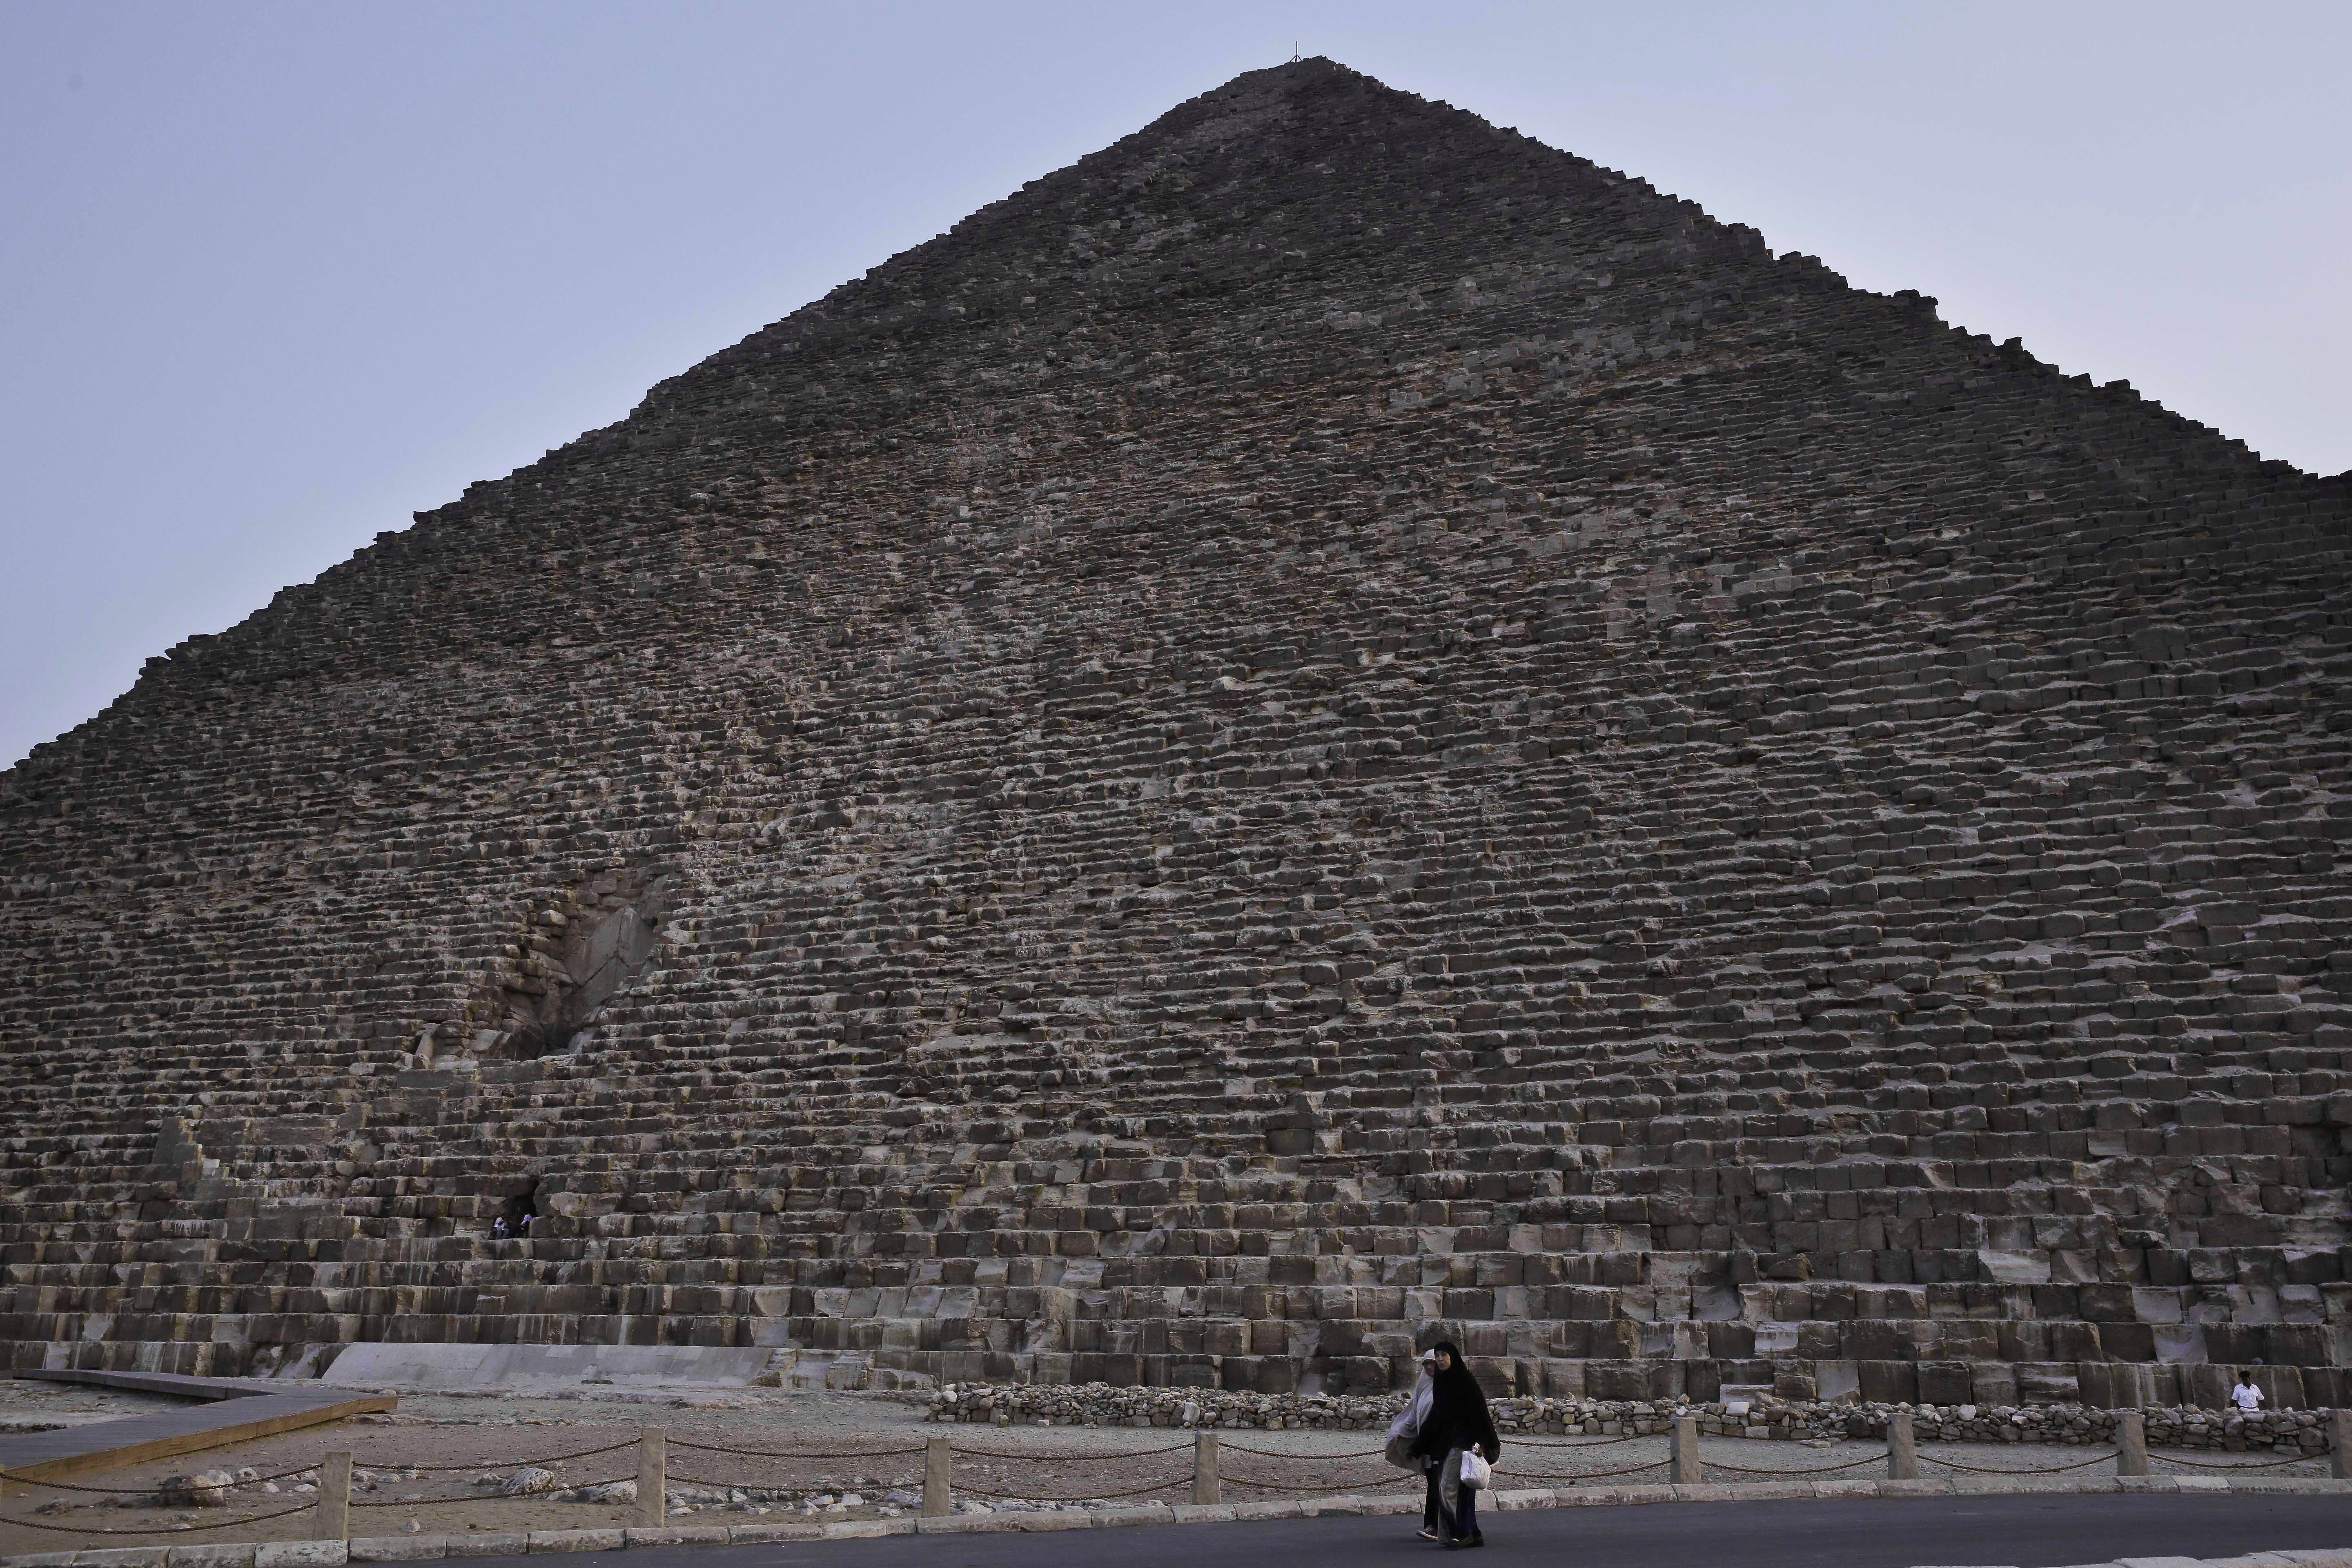 There Are Strange Hot Spots On Giza's Great Pyramid, And No One's Quite Sure Why